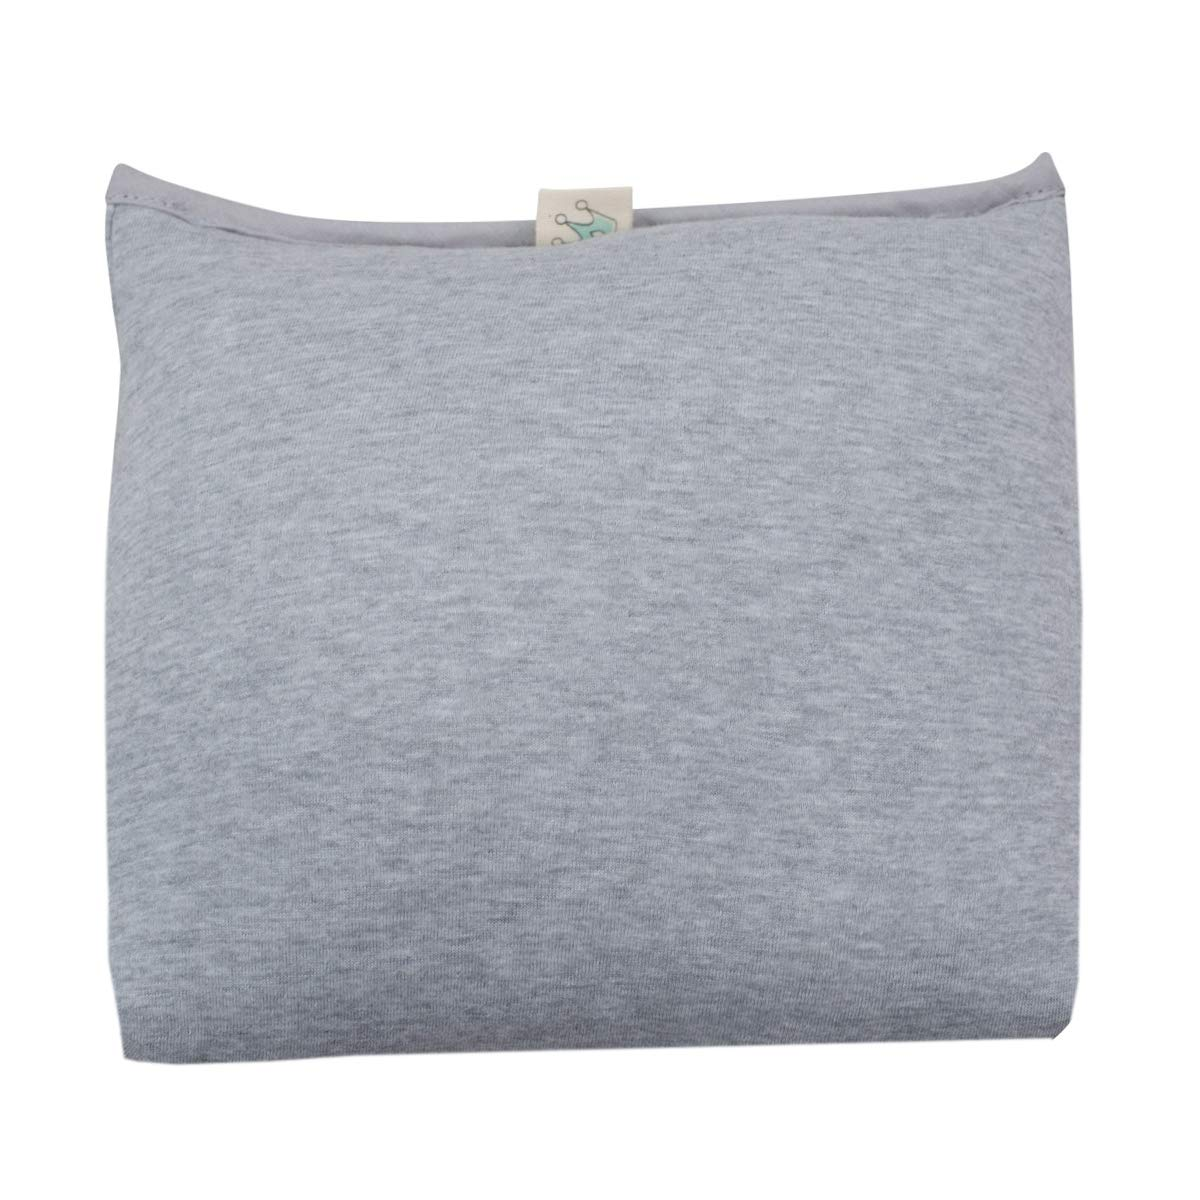 antiallergic made in cotton JANABEBE Reducer Support Cushion for Head /& Body Baby support